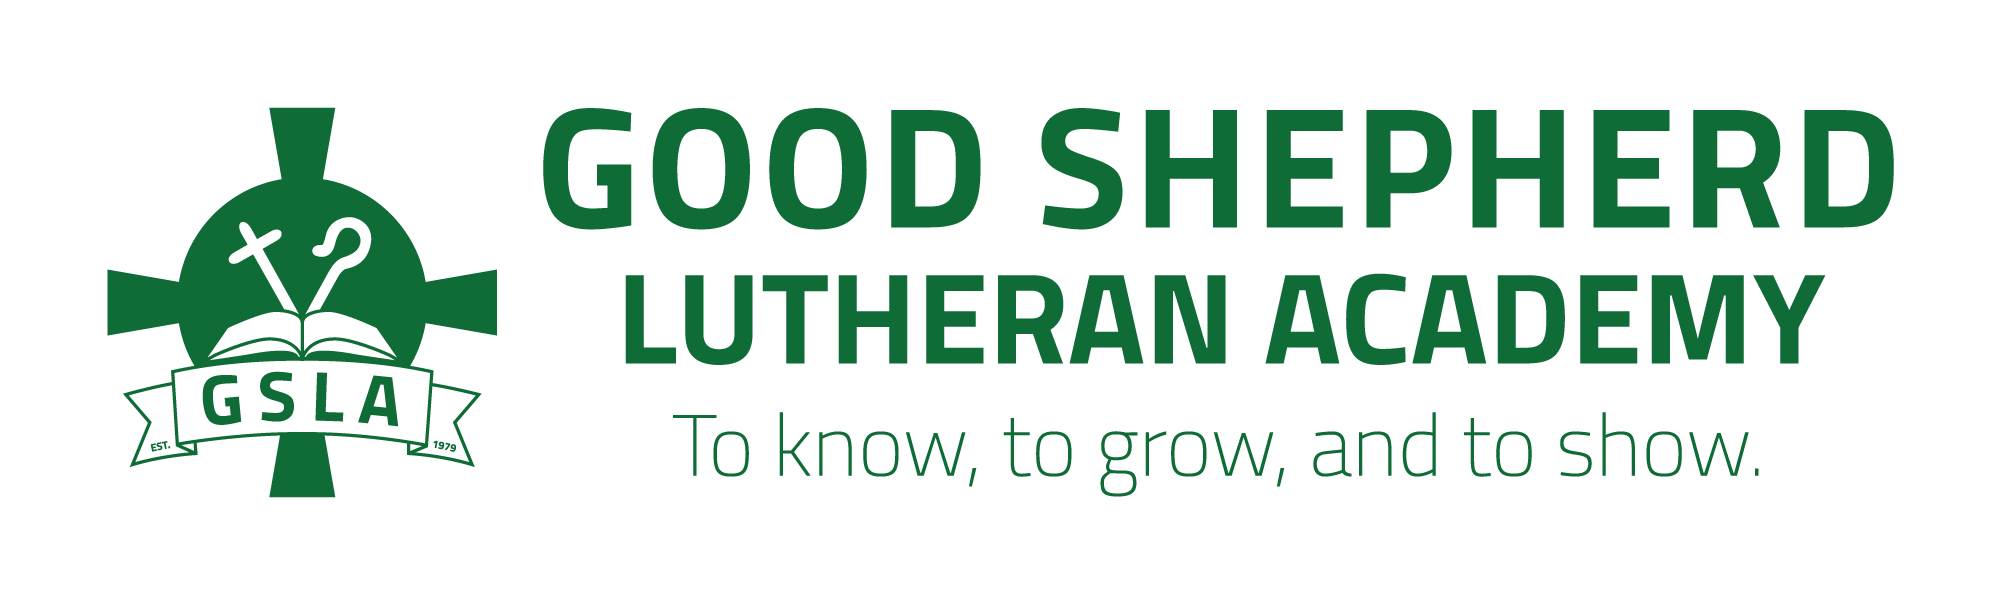 Good Shepherd Lutheran Academy